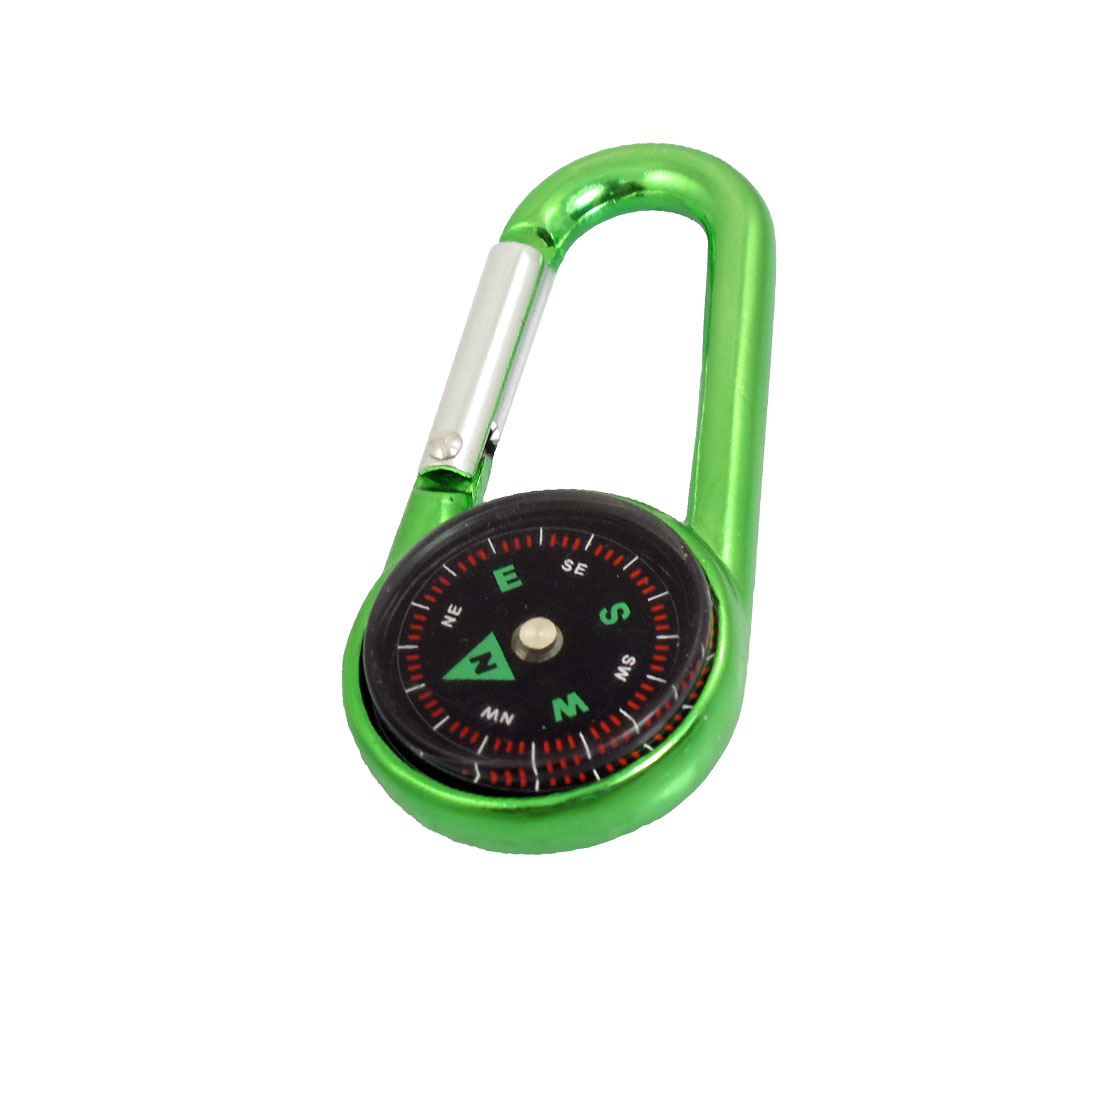 "Hiking Aluminum Alloy Snap Hook Compass Carabiner Green 2.7"" Long"